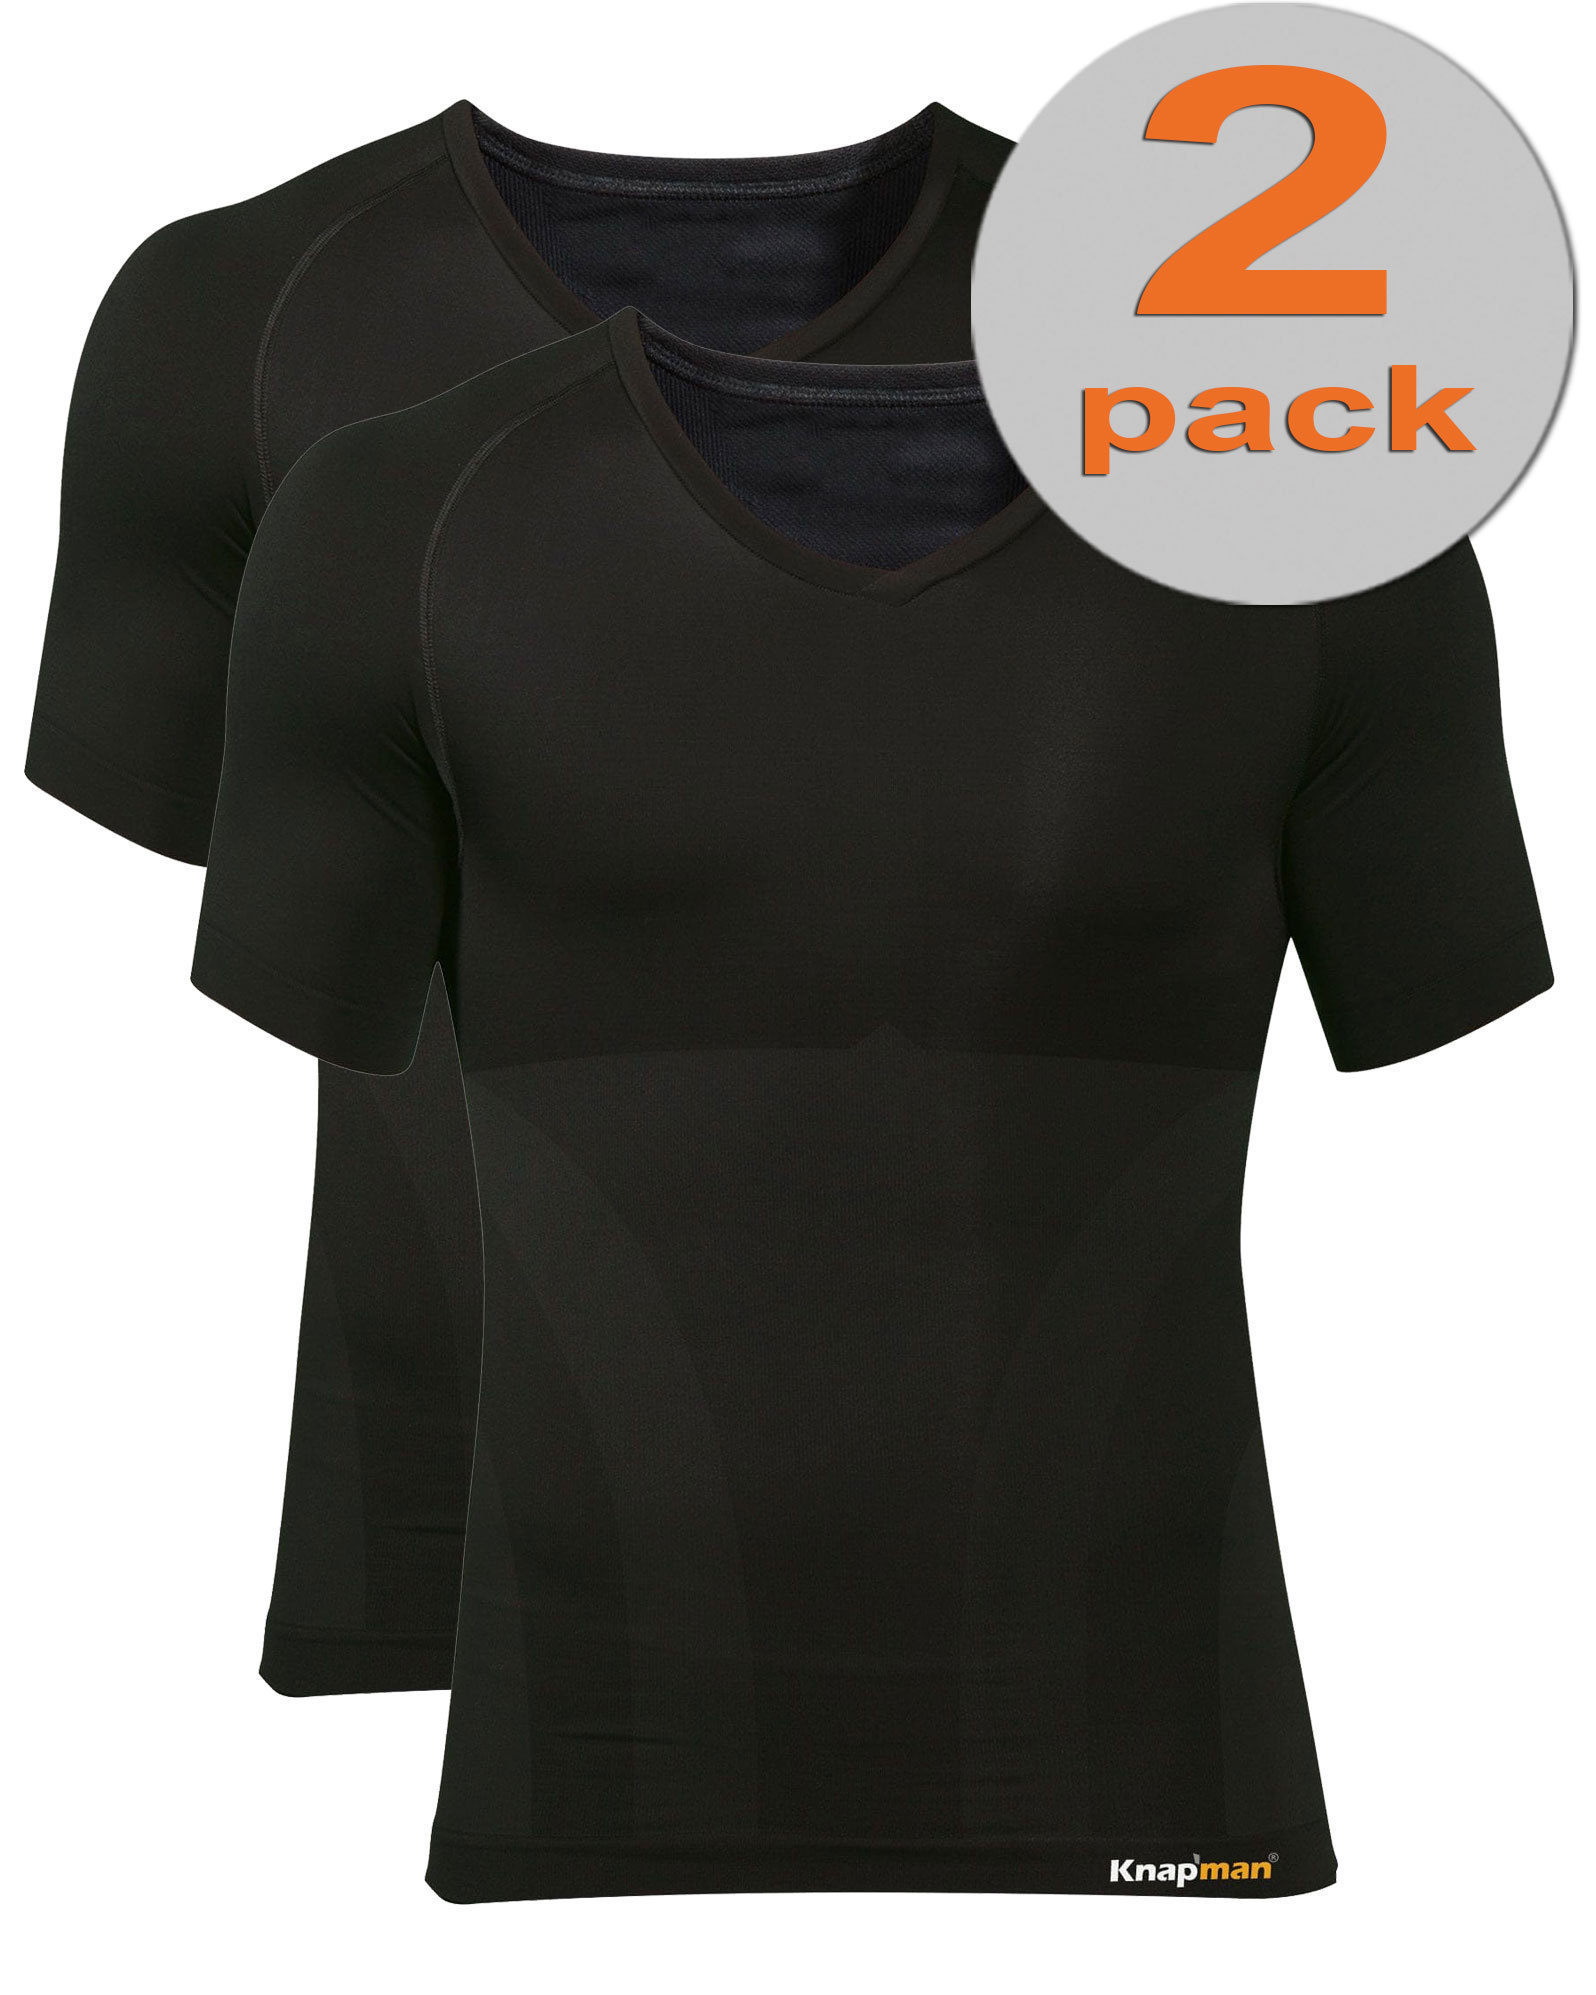 TWOPACK | Knap'man Zoned Cotton Comfort V-hals shirt zwart